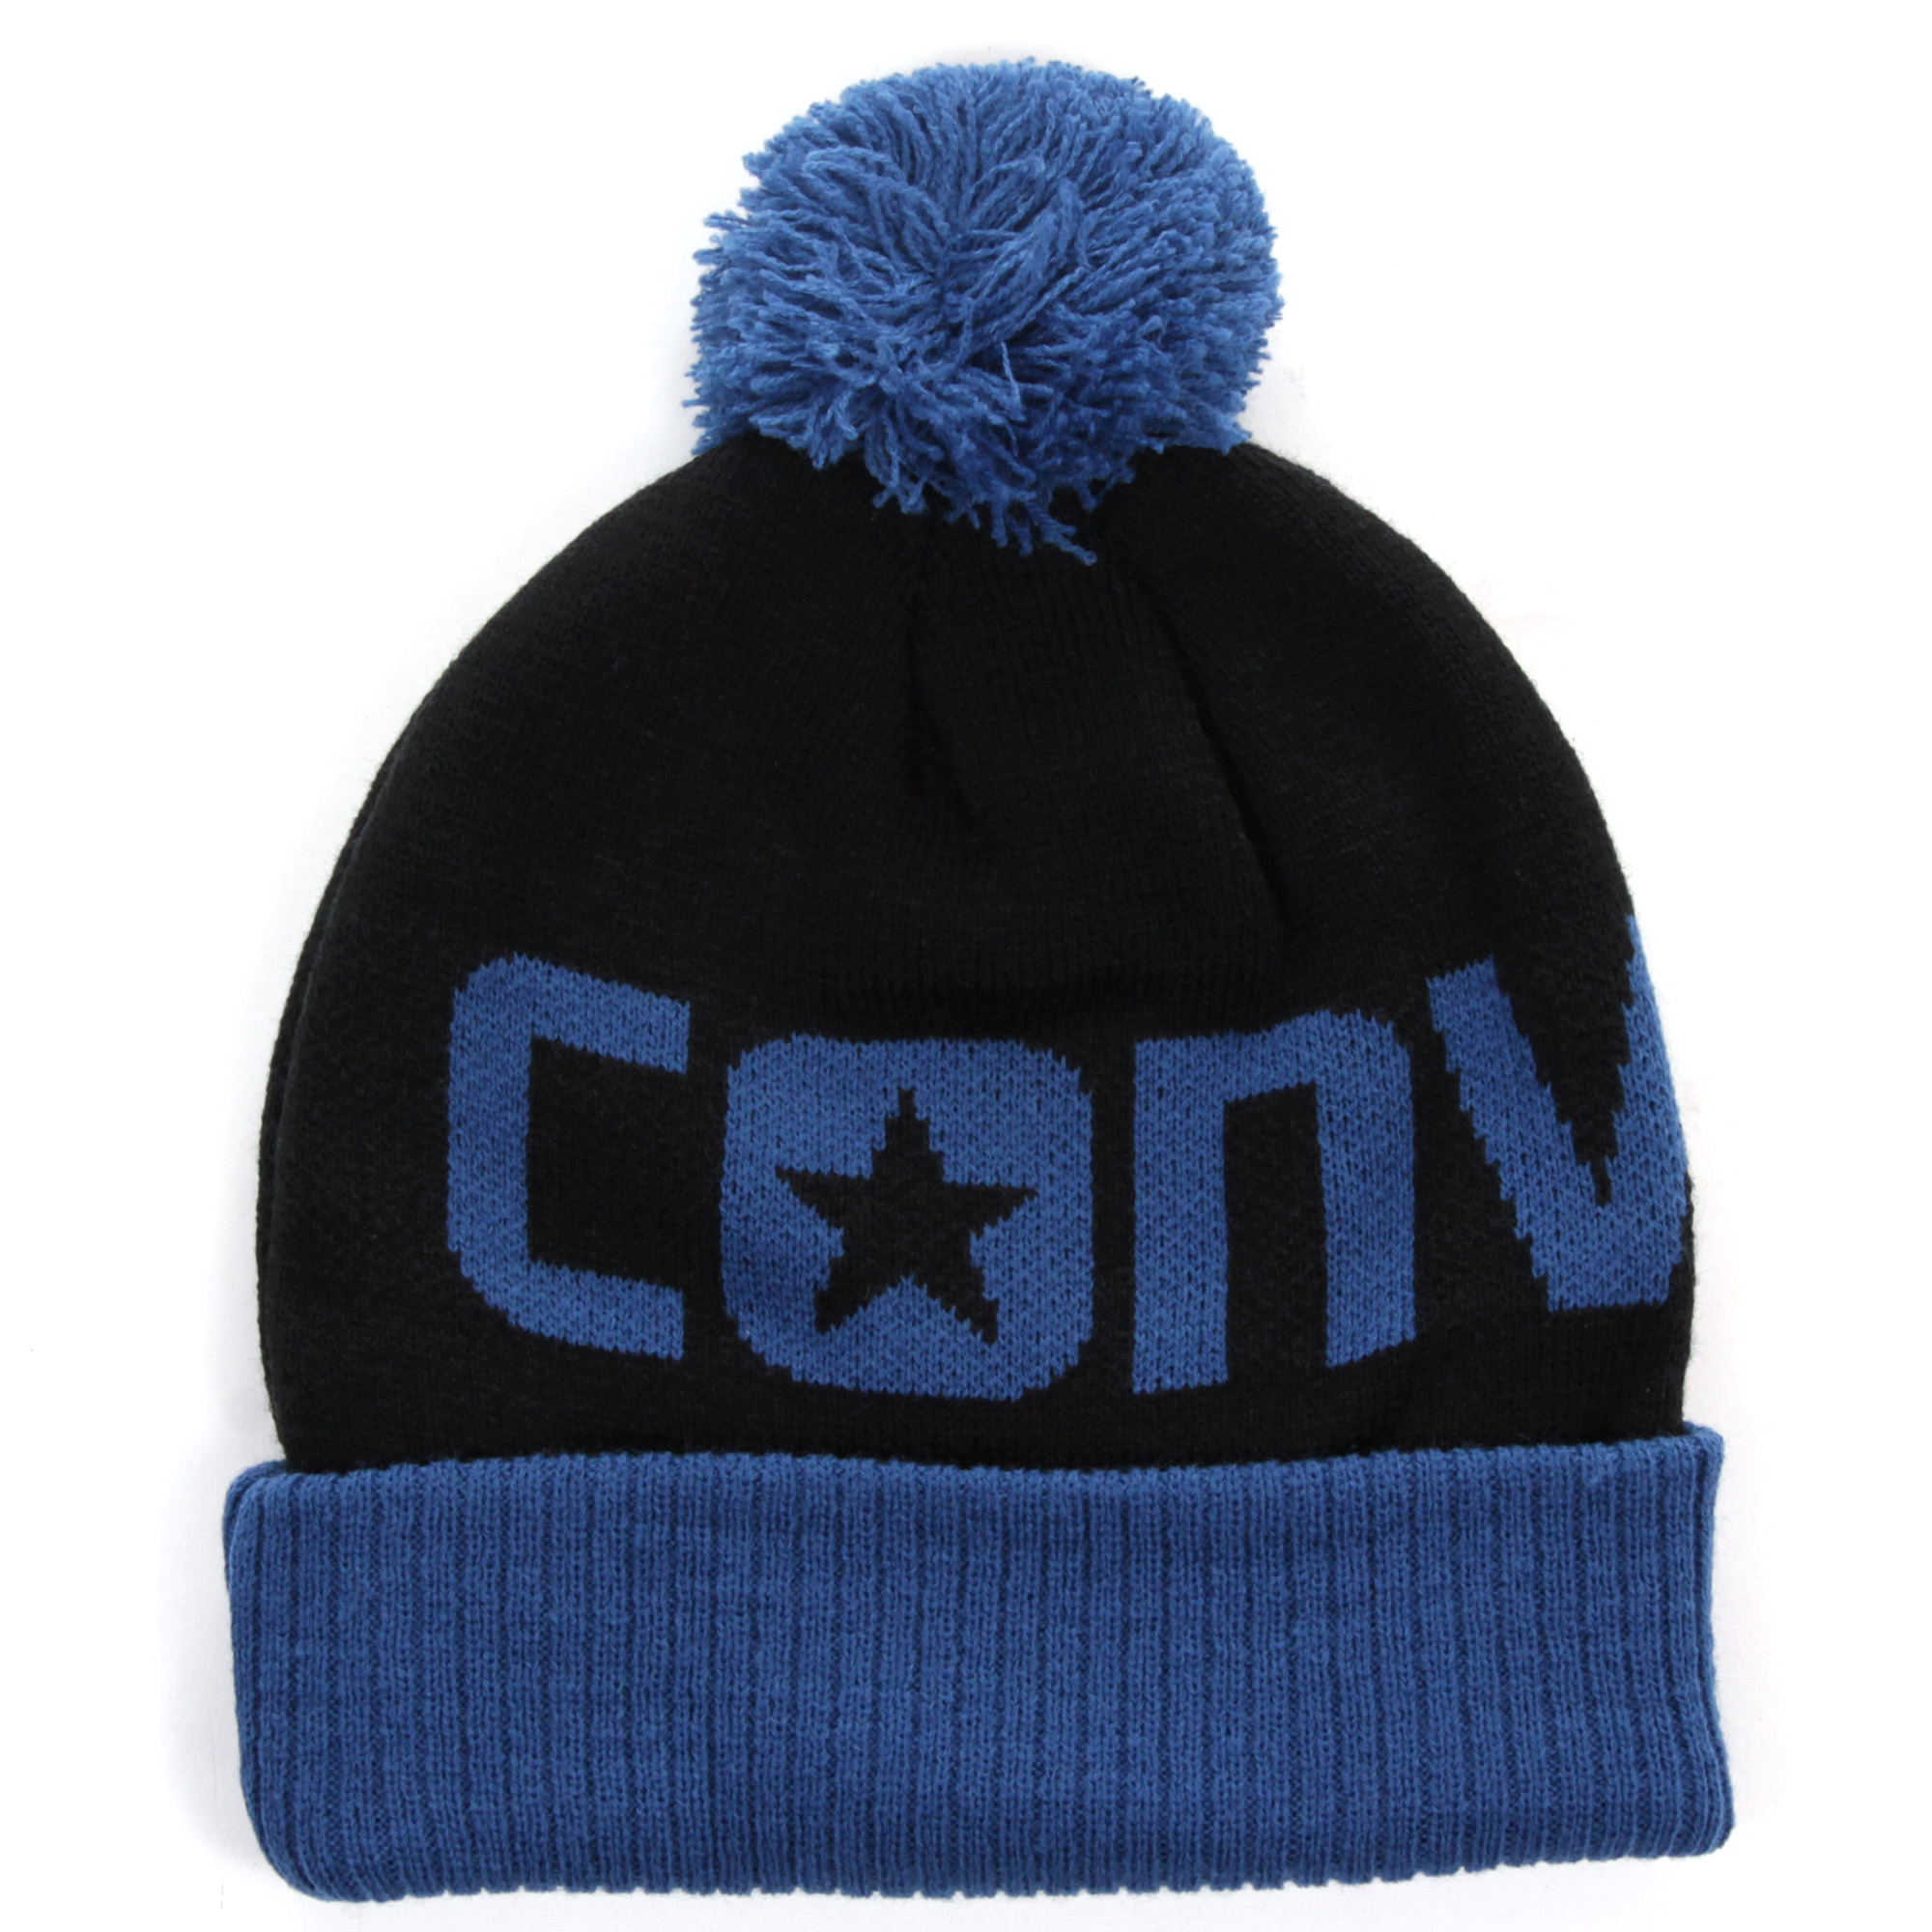 Choose from a colorful selection of pom pom hats in styles for both girls and boys. Discover classic cable knit hats, fleece hats and beanies in dynamic pom pom designs. Add a bit of whimsey with popular bear pom poms including cable knit and fleece hat designs.